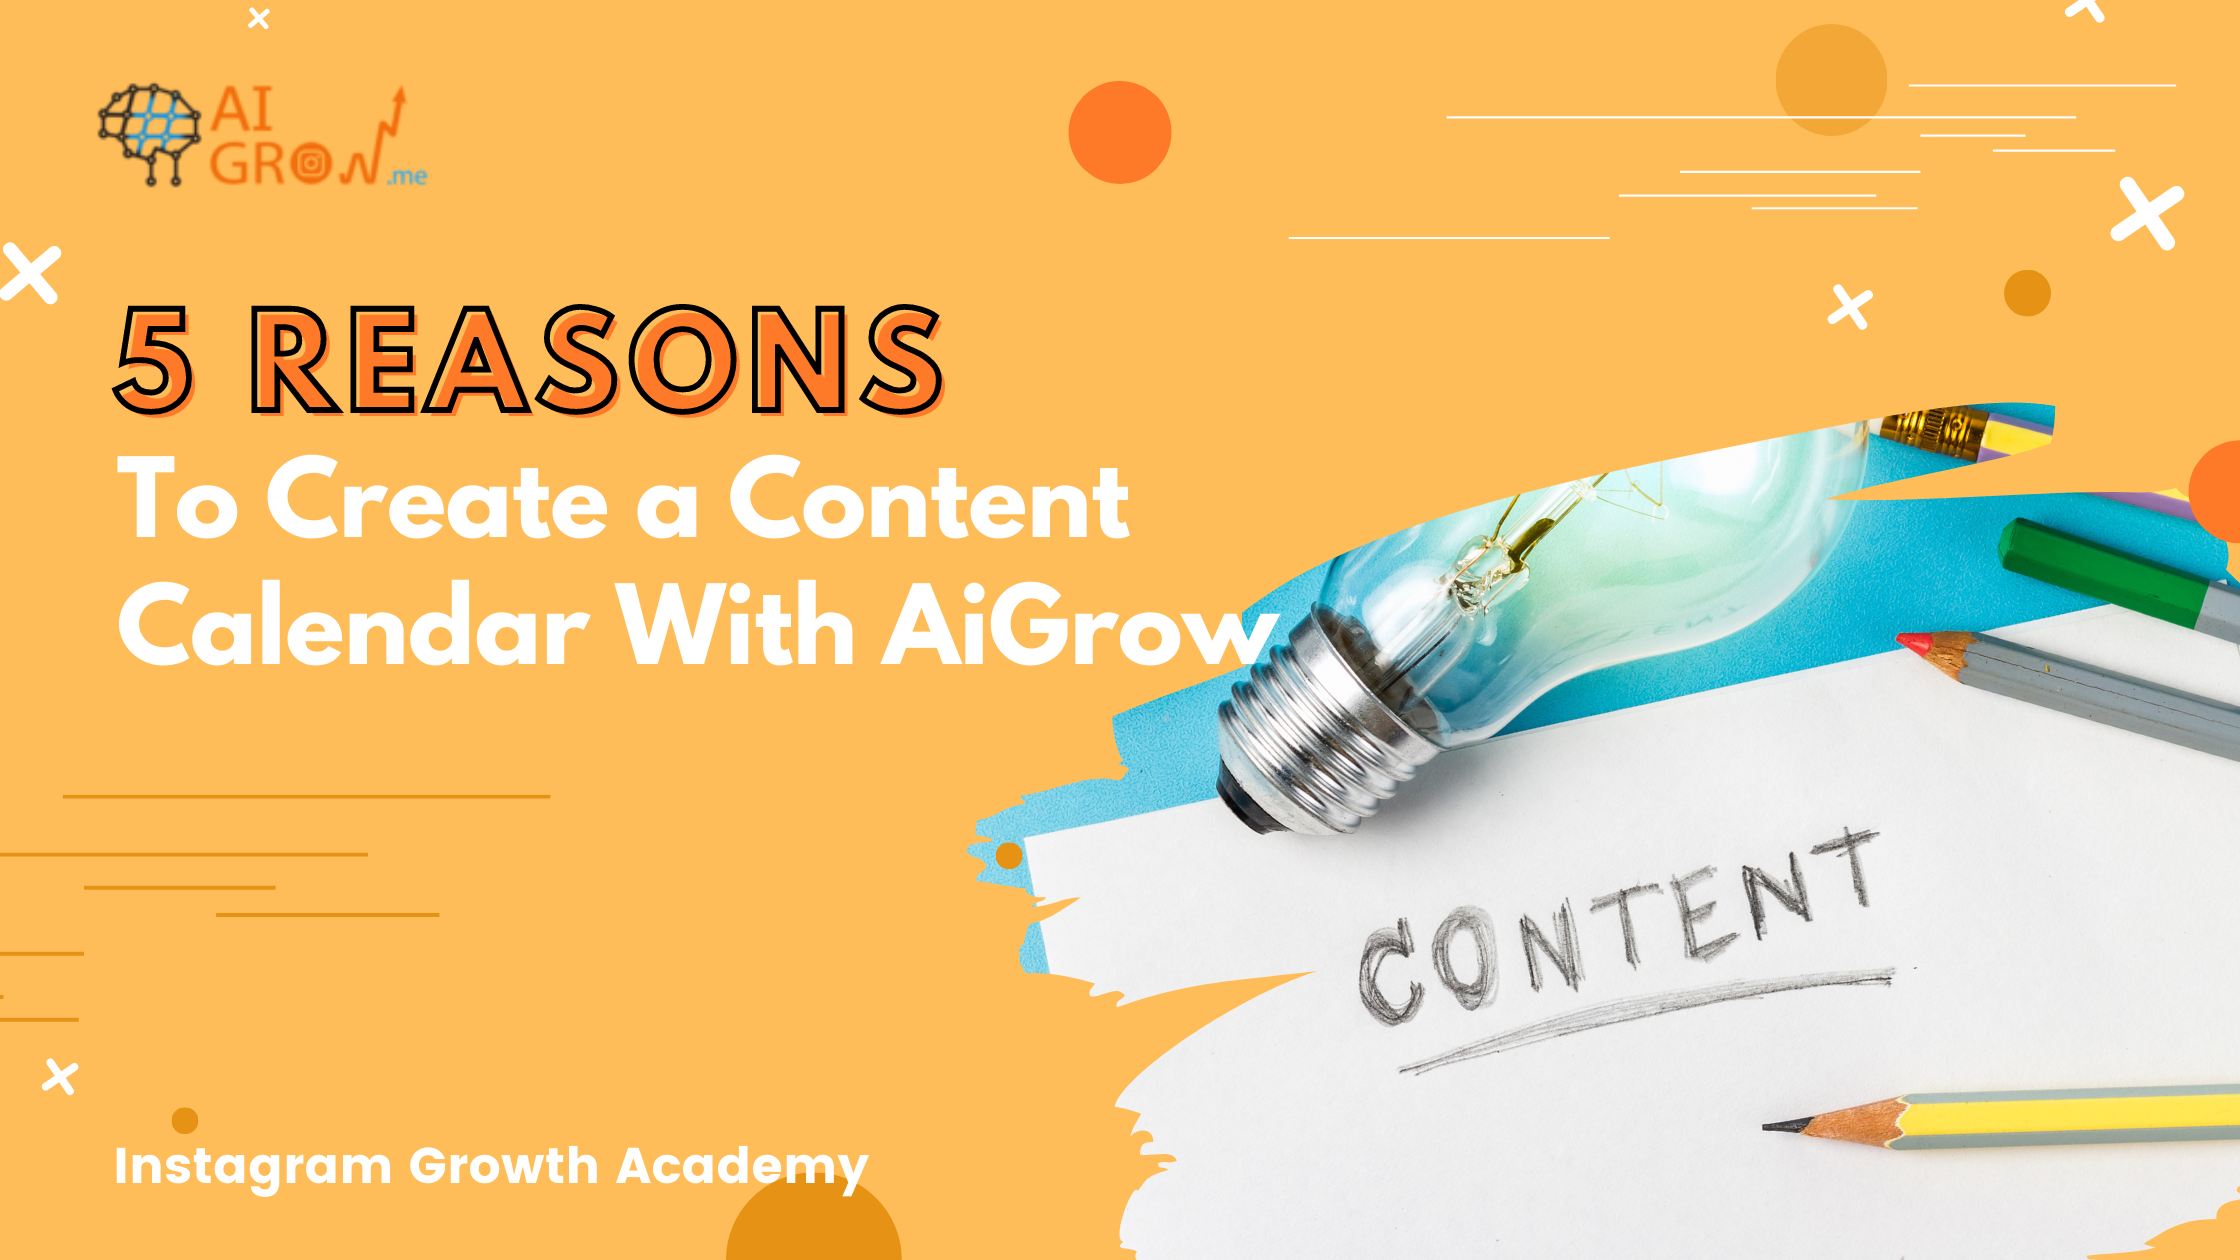 5 Reasons to Create an Instagram Content Calendar with AiGrow